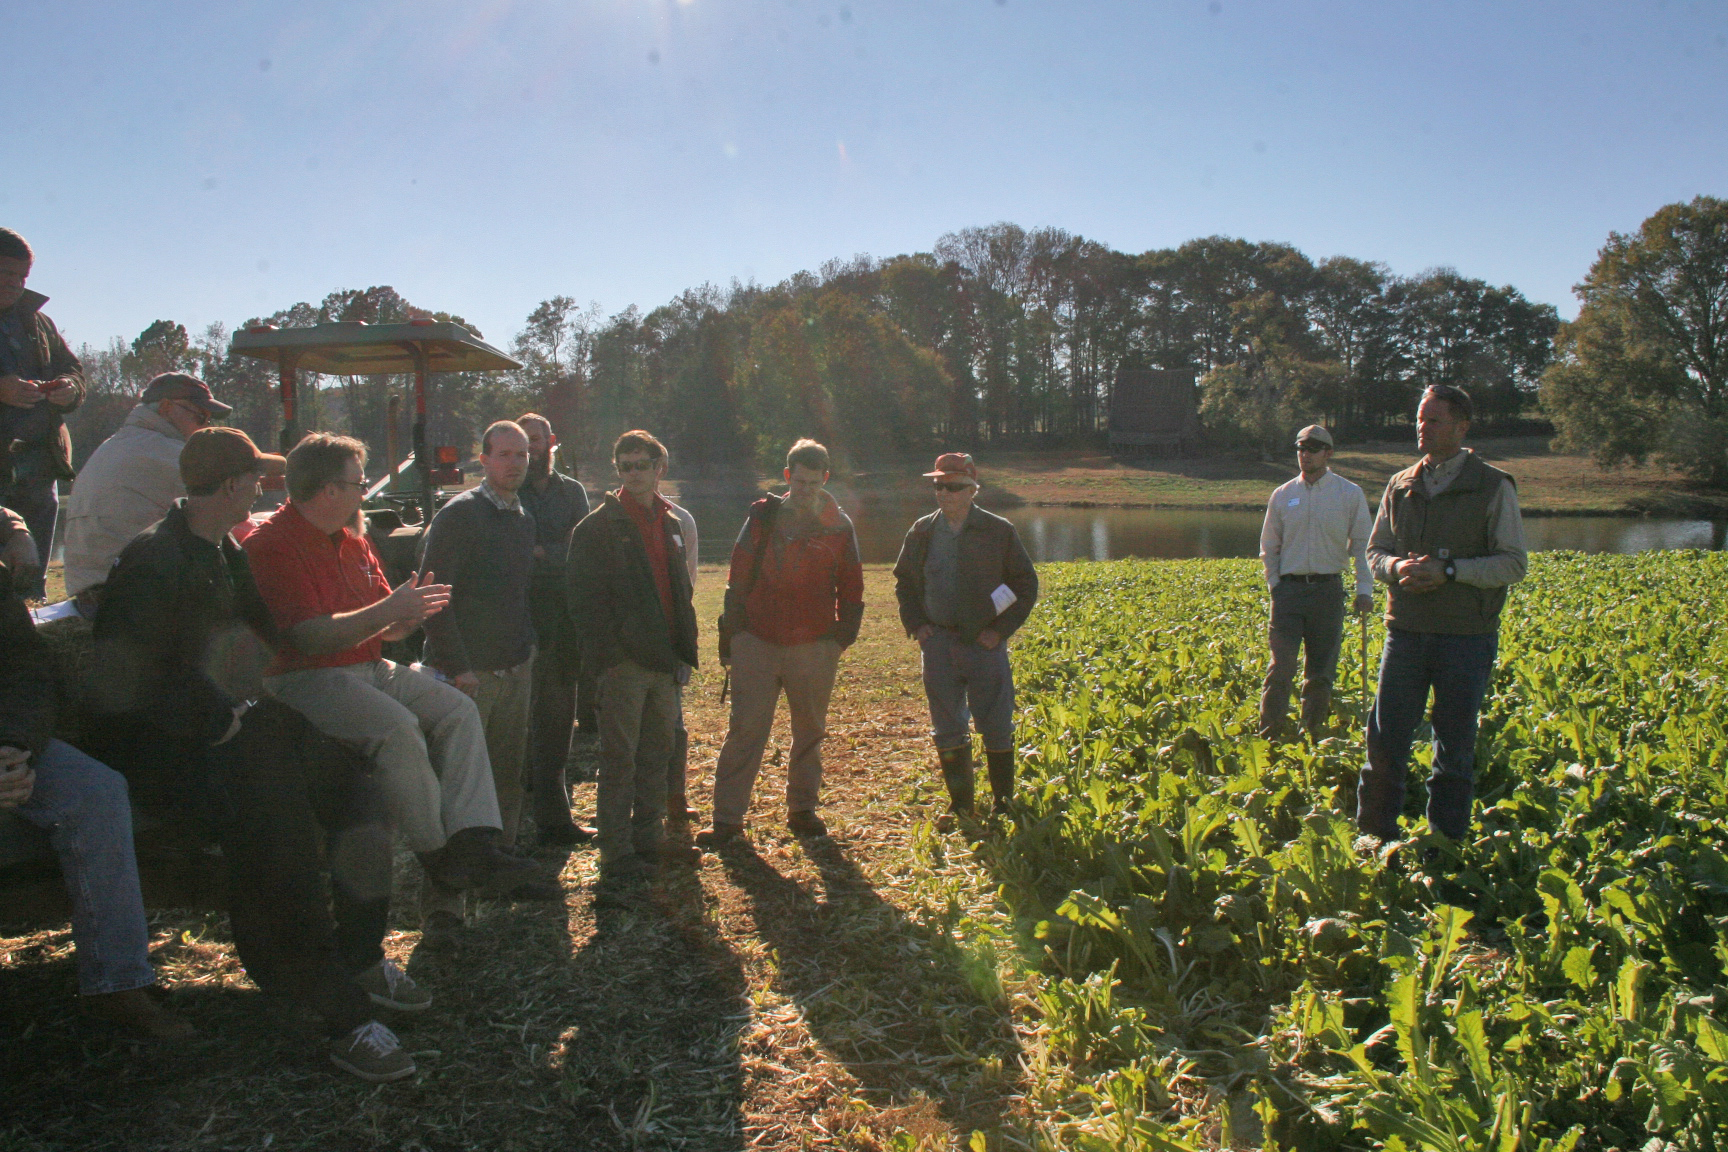 A group of northeast Georgia cattle farmers listens to a forage update from UGA Extension Specialist Dennis Hancock at Madison County farmer Terry Chandler's (far right) pasture.